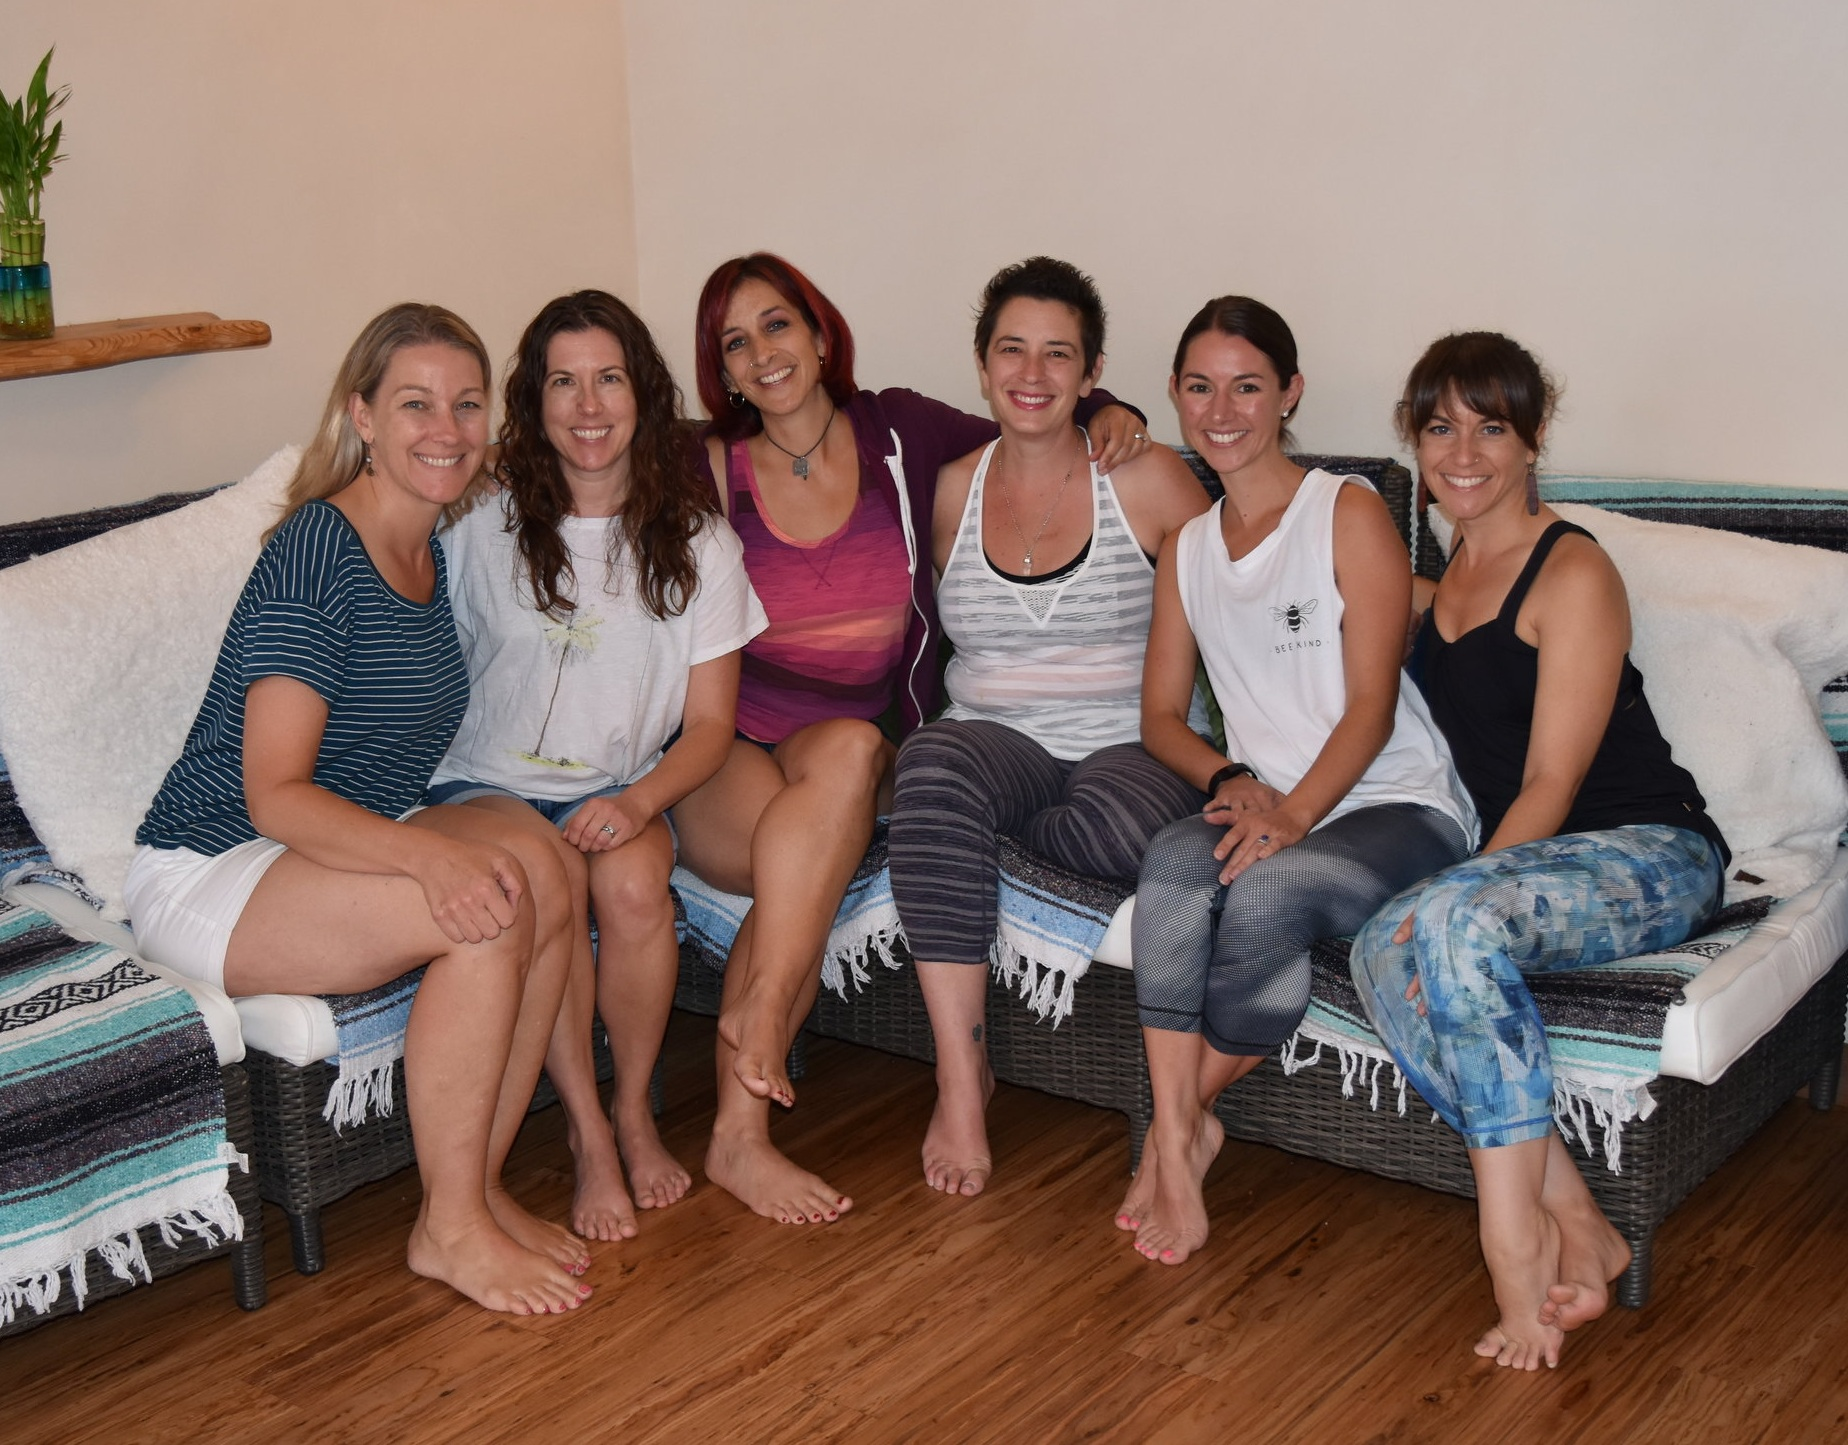 The Lotus Blossom Team (from left): Hillary, Adrienne, Jeanna, Casey, Rebecca, and Lisa